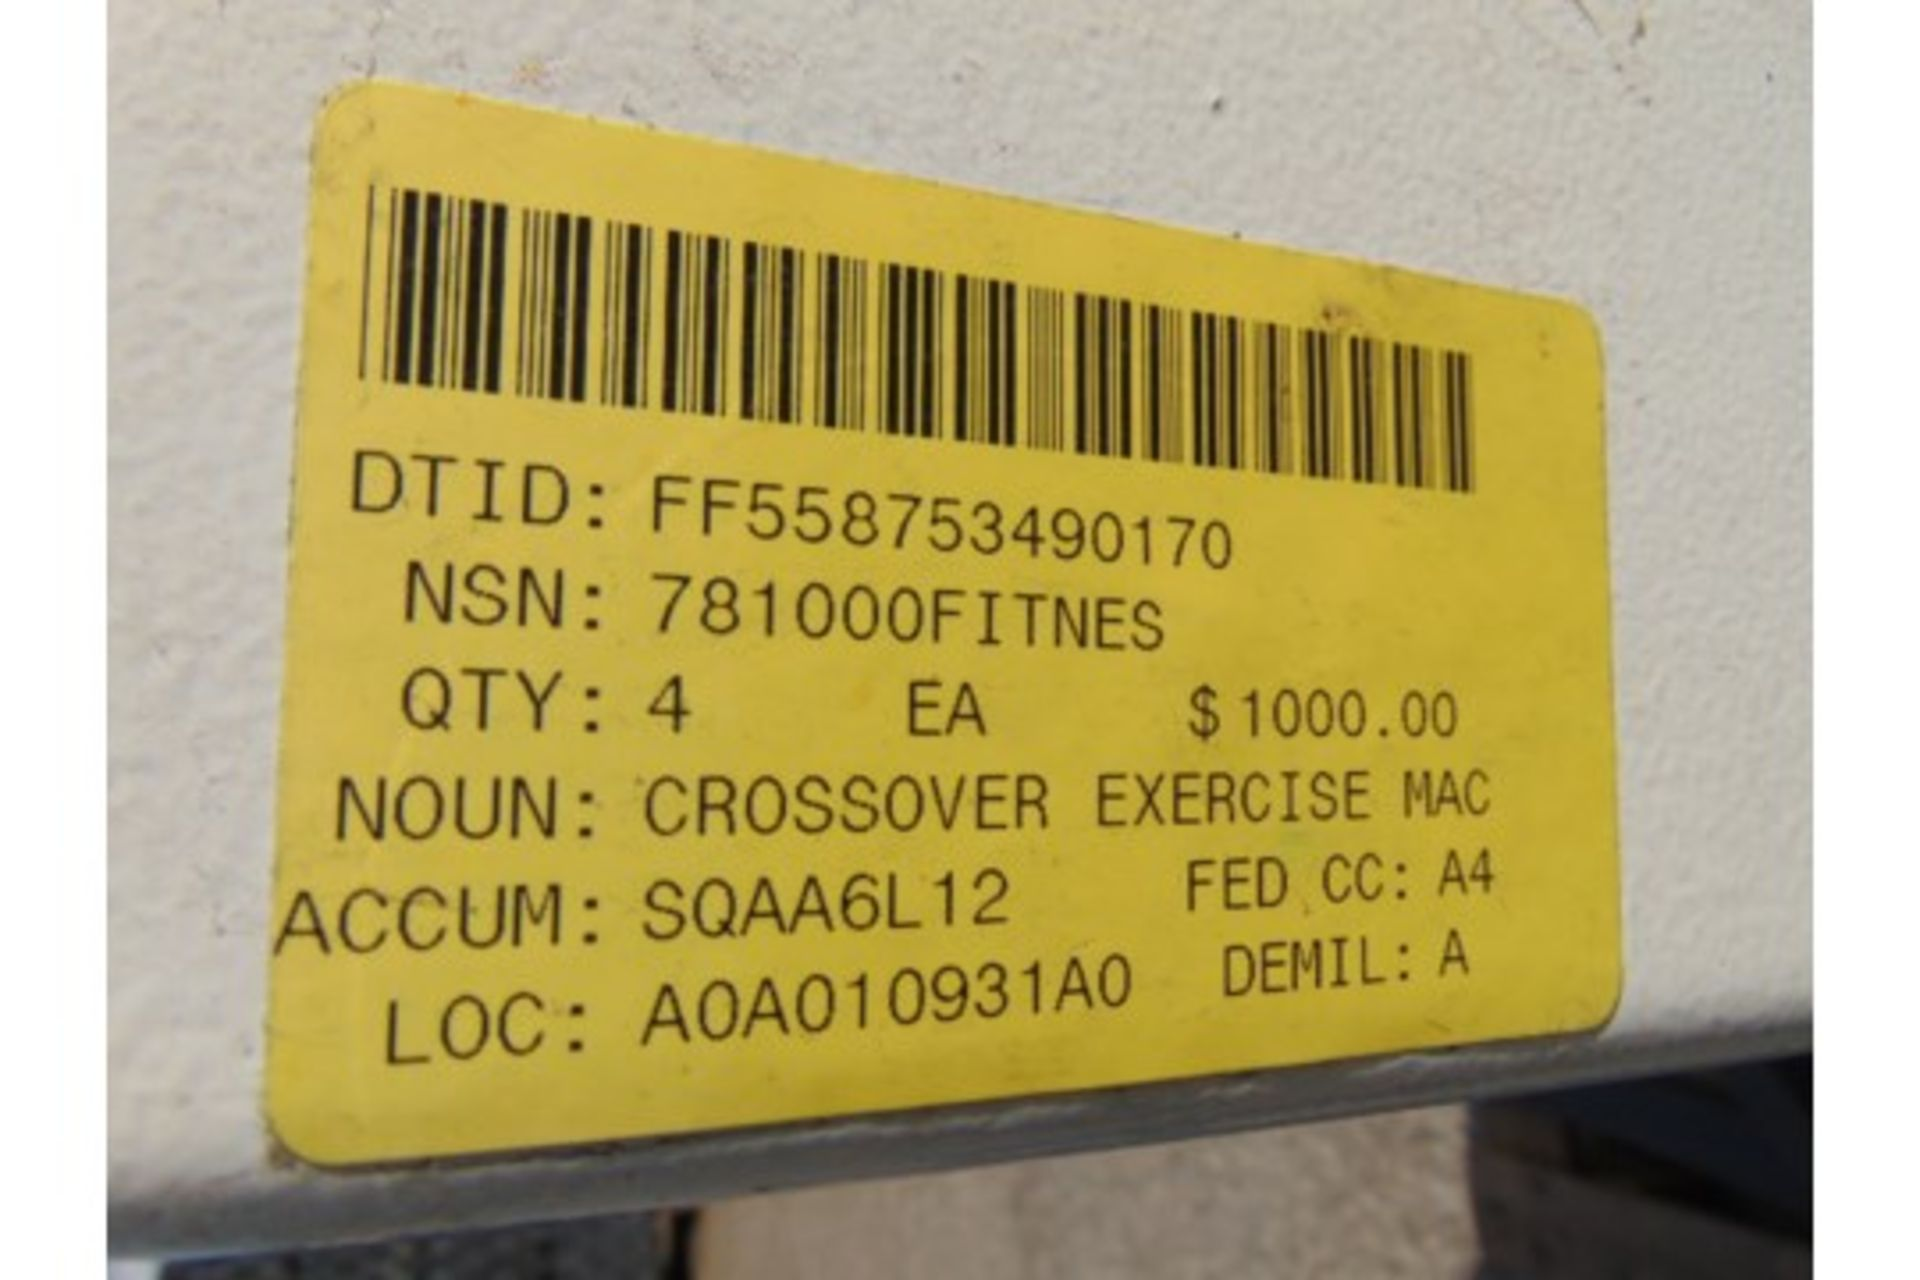 Lot 25830 - Cybex Cable Crossover Exercise Machine